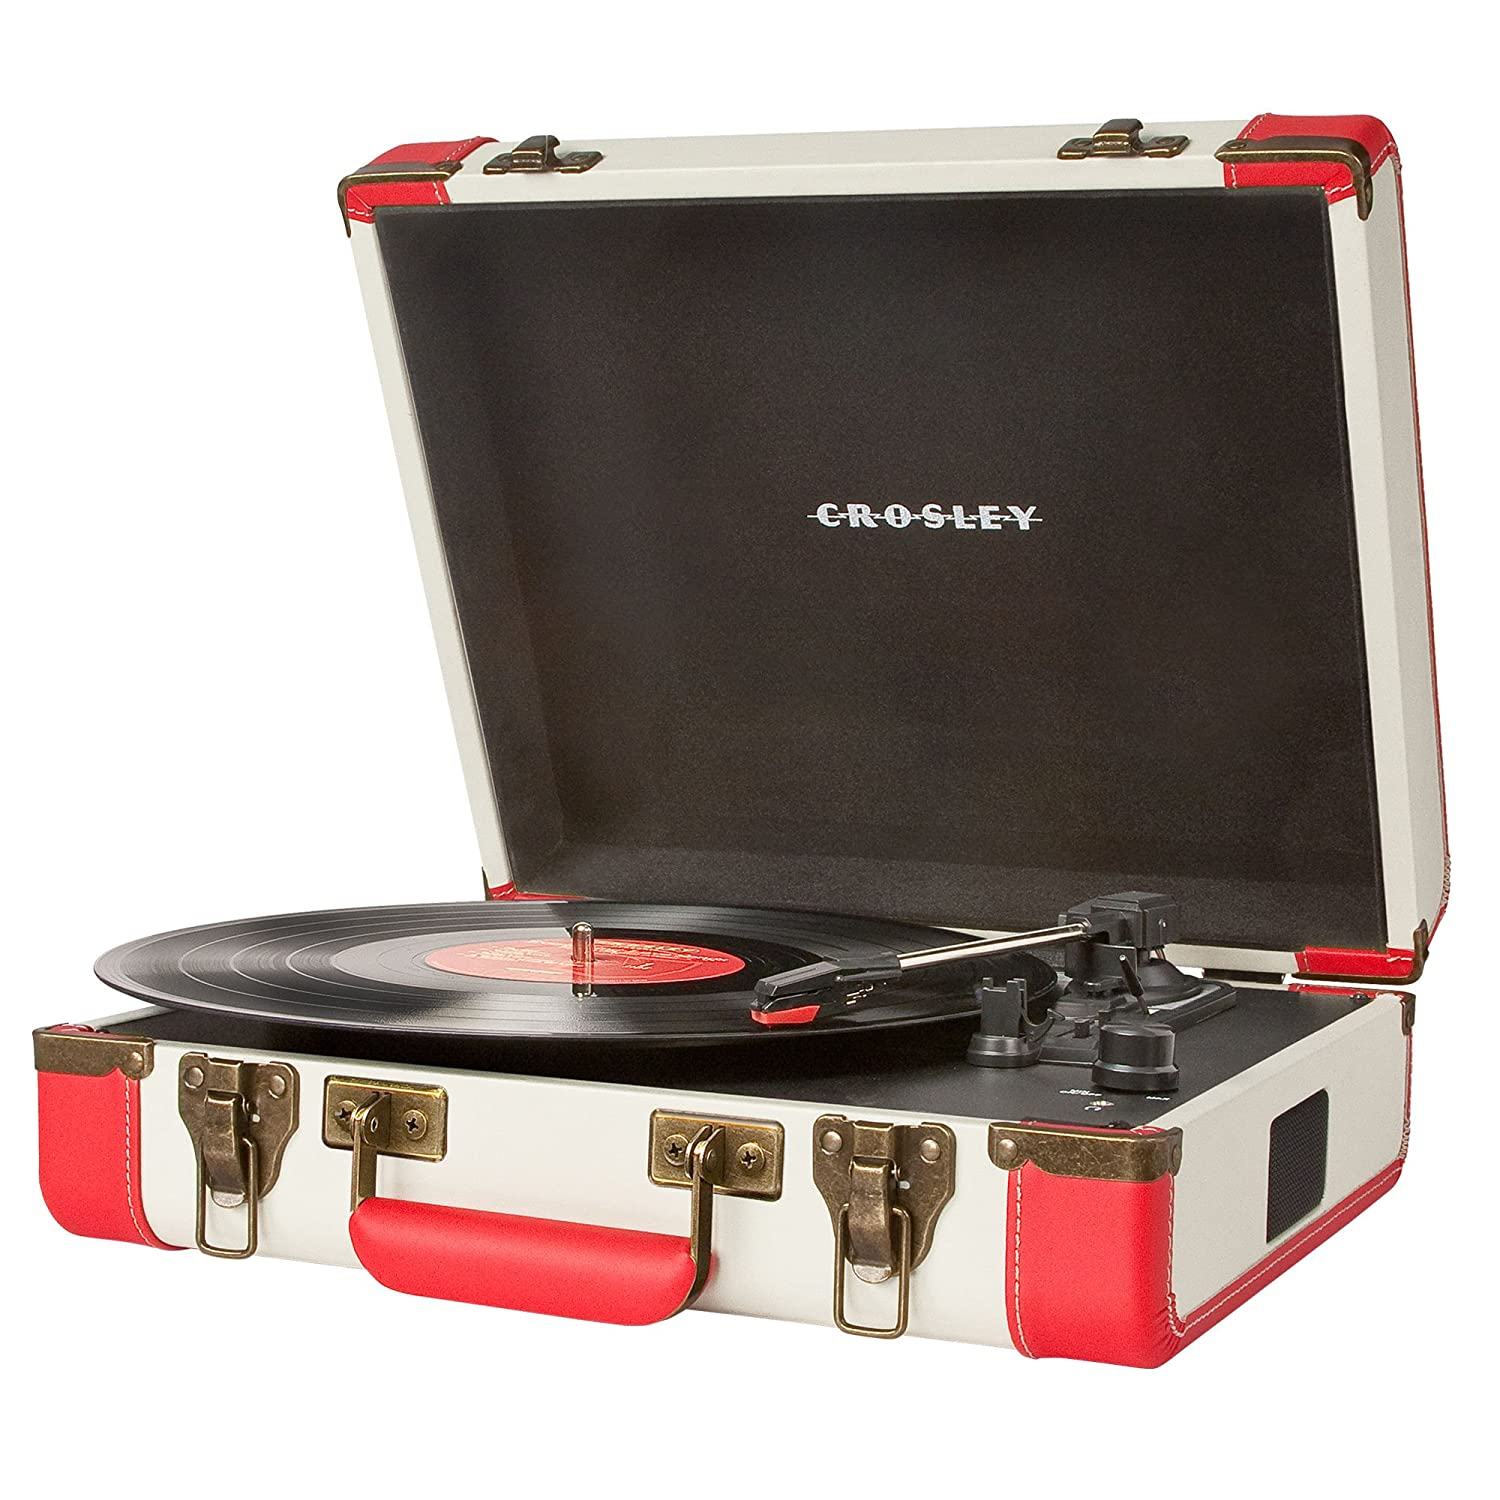 Vintage and portable record player